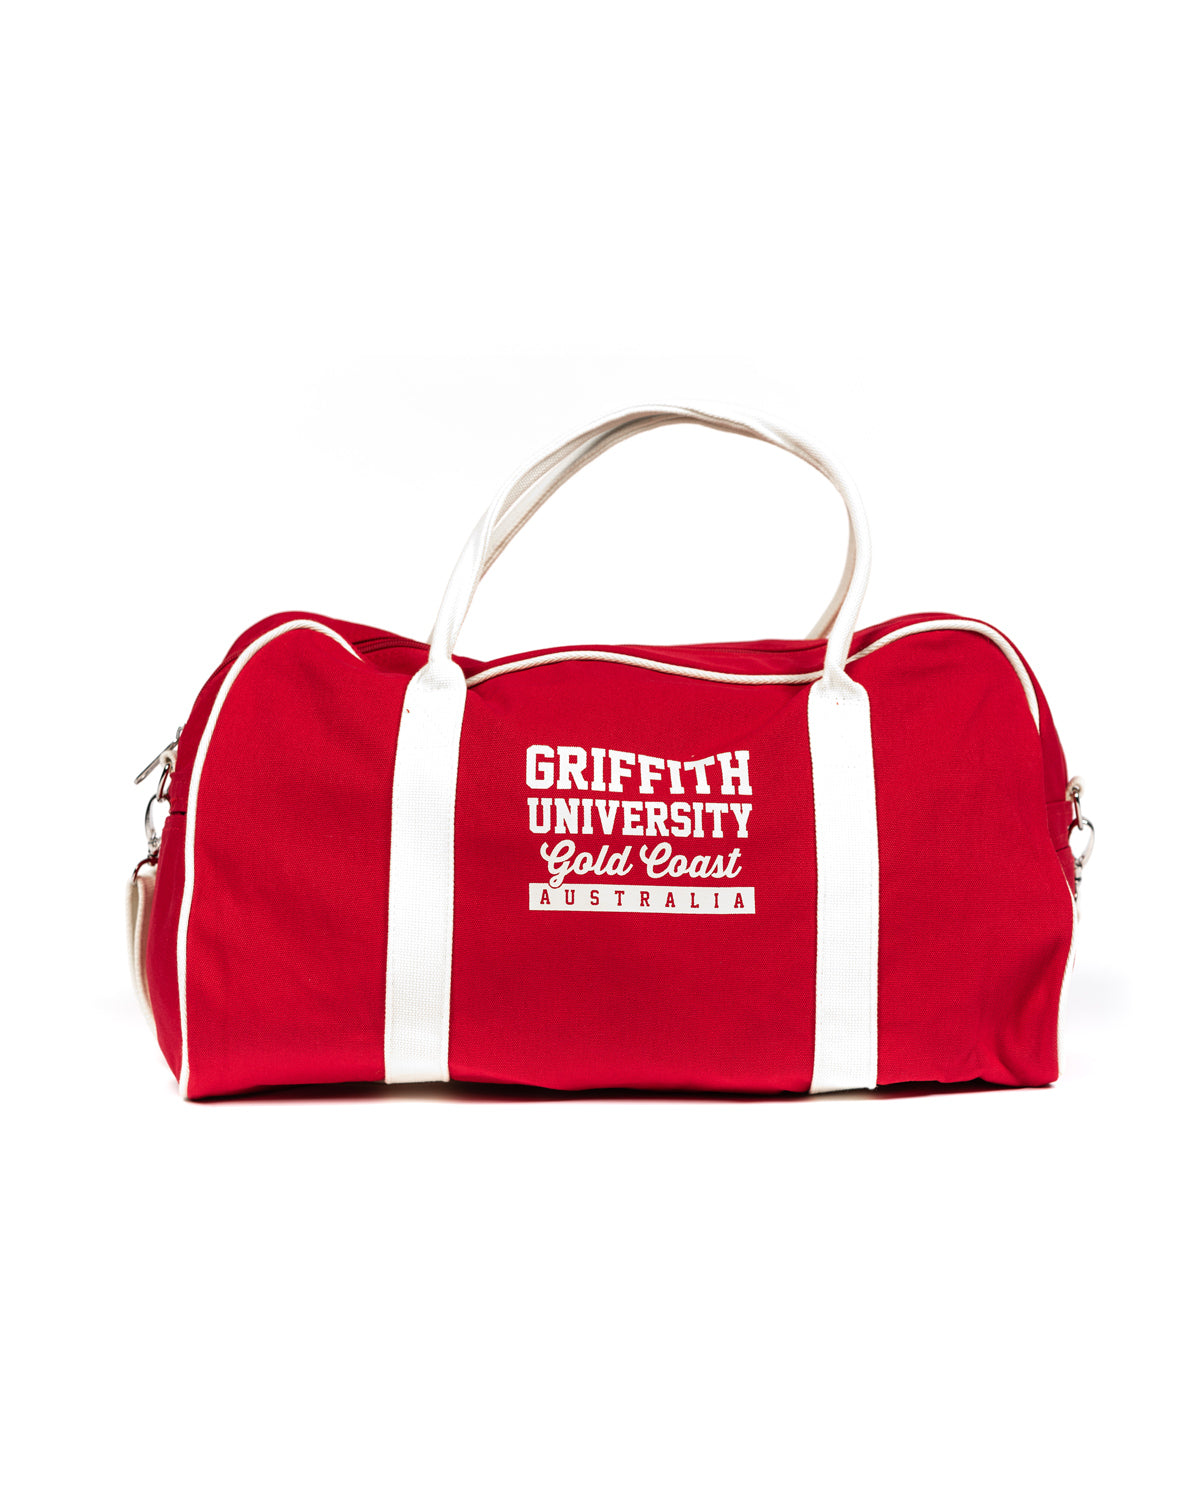 Griffith duffle bag